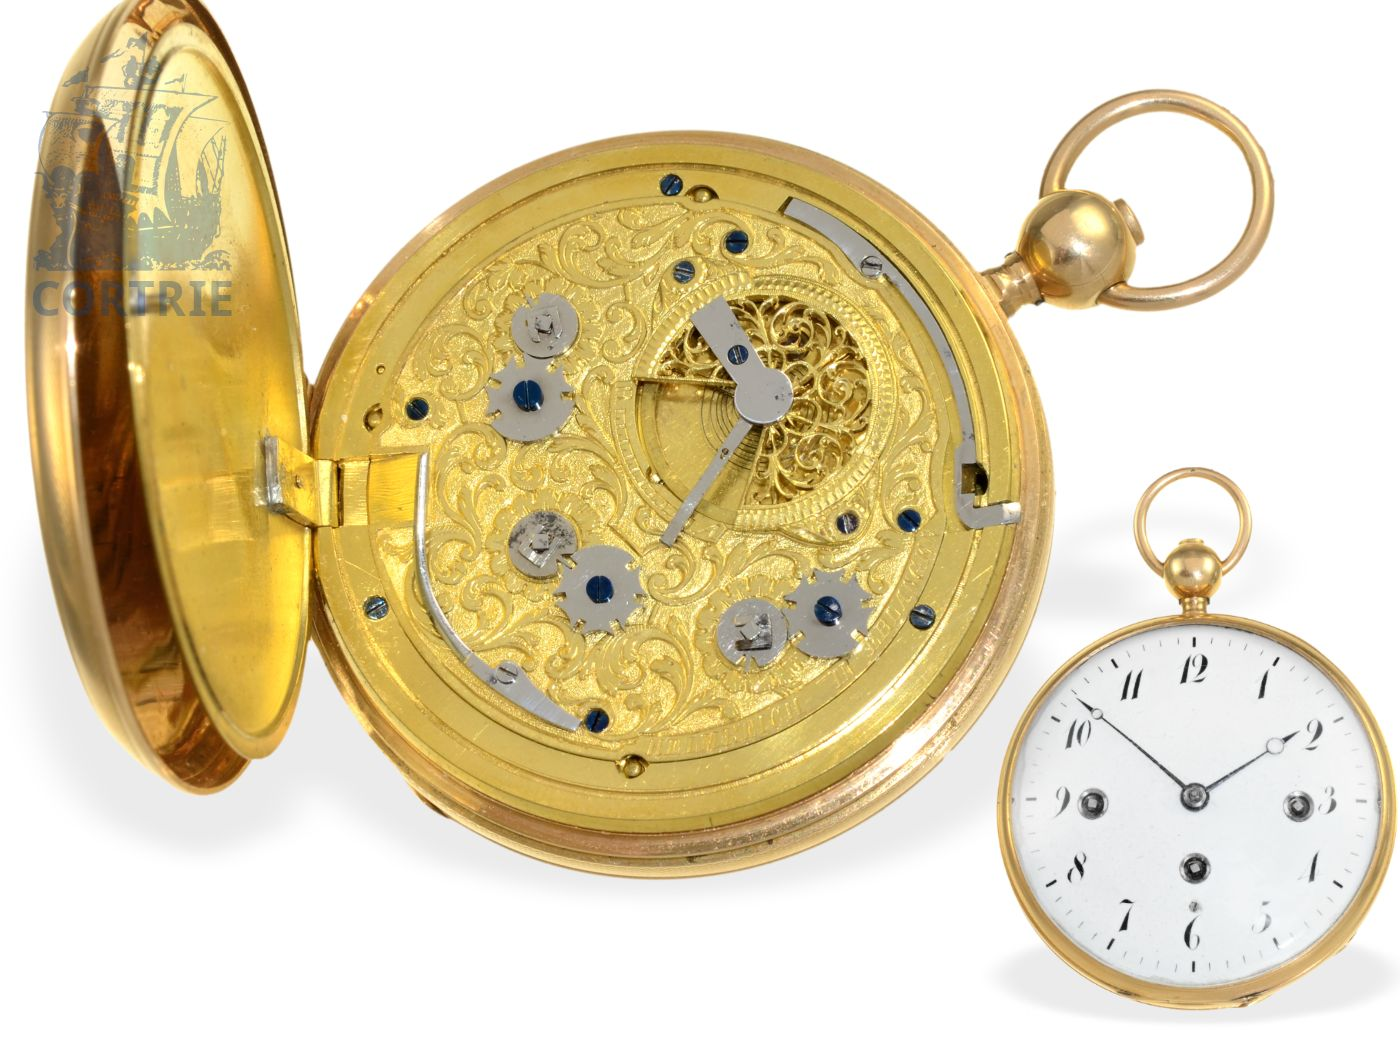 Pocket watch: technical interesting and extremely rare German pocket watch repeater with Grande Sonnerie, Johann Thomas Heinrich Helmreich Erlangen, ca. 1810-